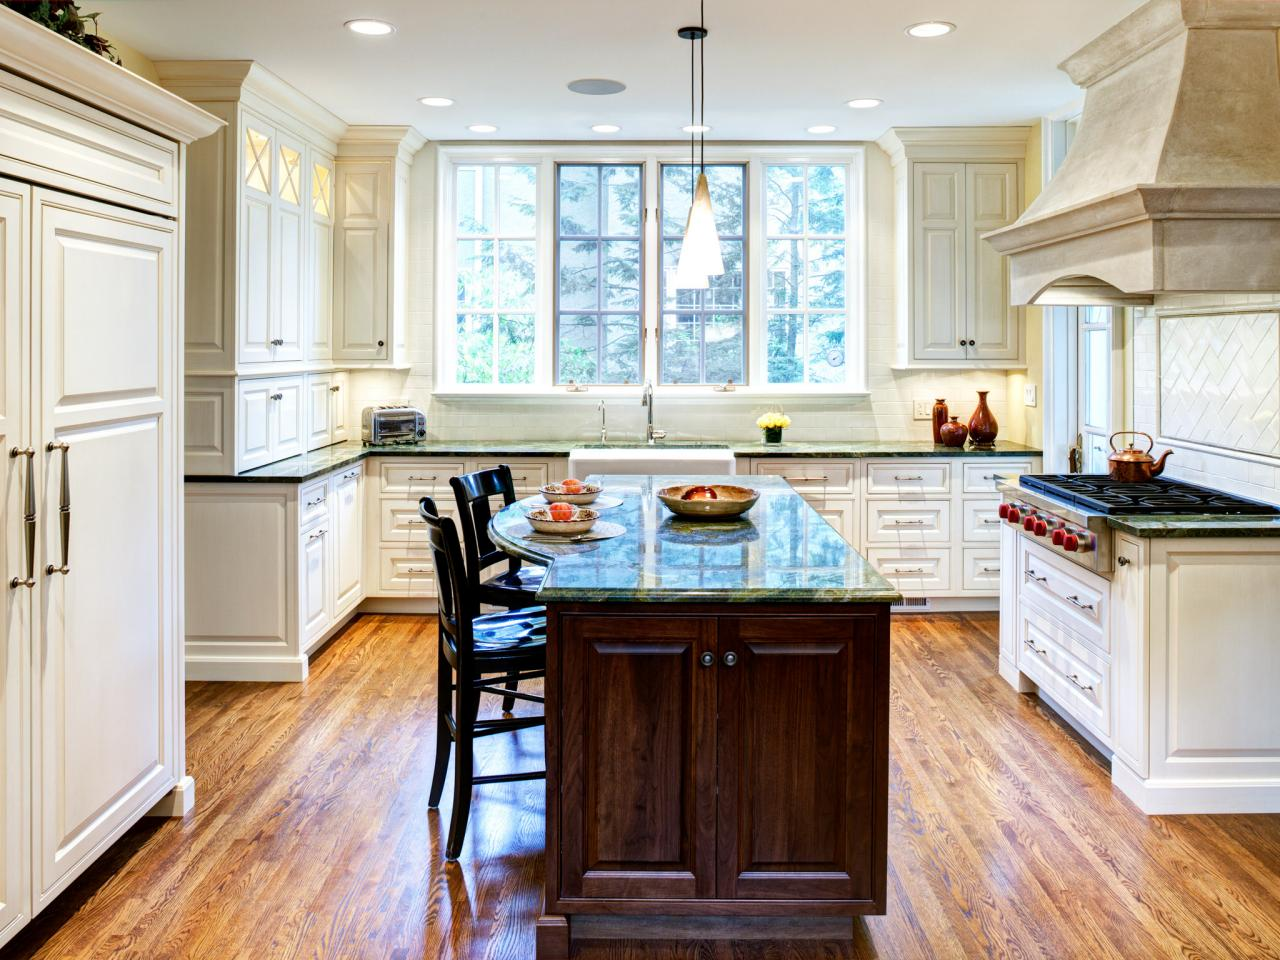 Large Kitchen Windows: Pictures, Ideas & Tips From HGTV | HGTV